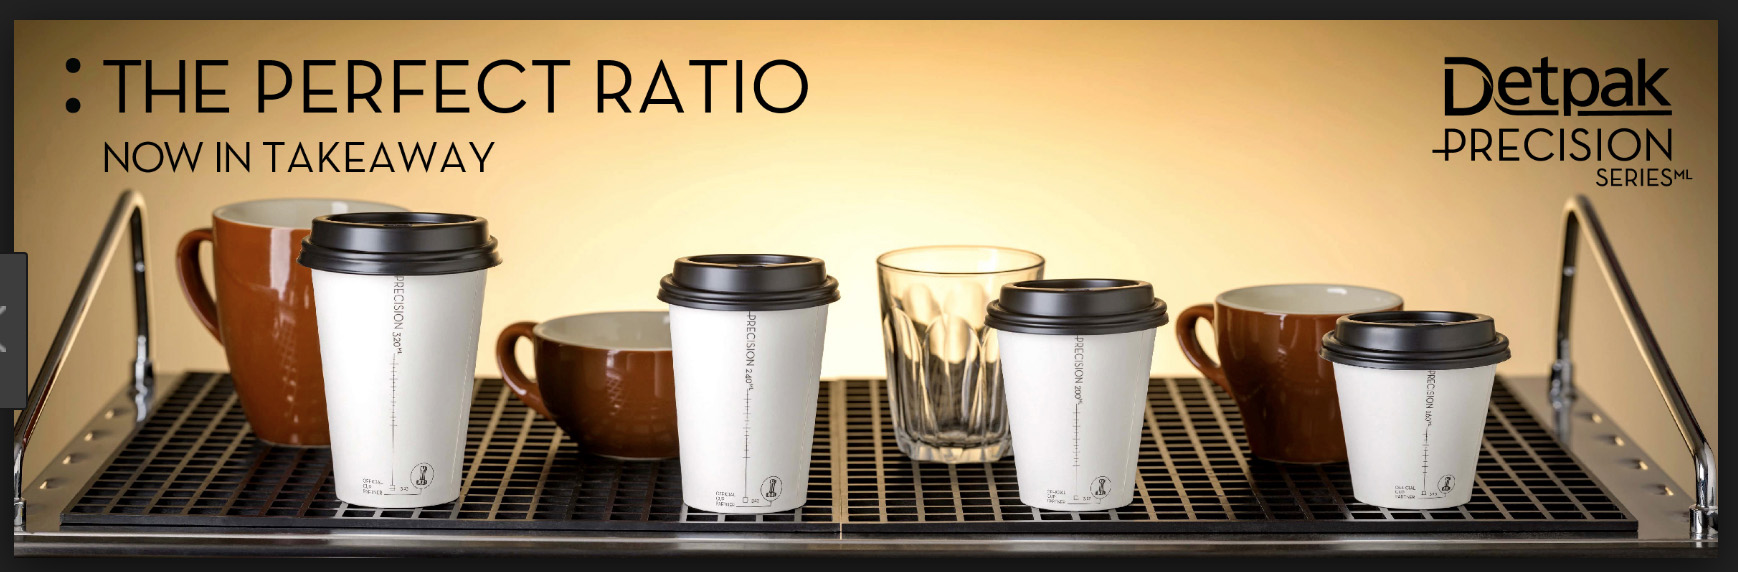 Precision Series take-out coffee cups provide the right proportion of milk to espresso, giving you the flavor experience you expect